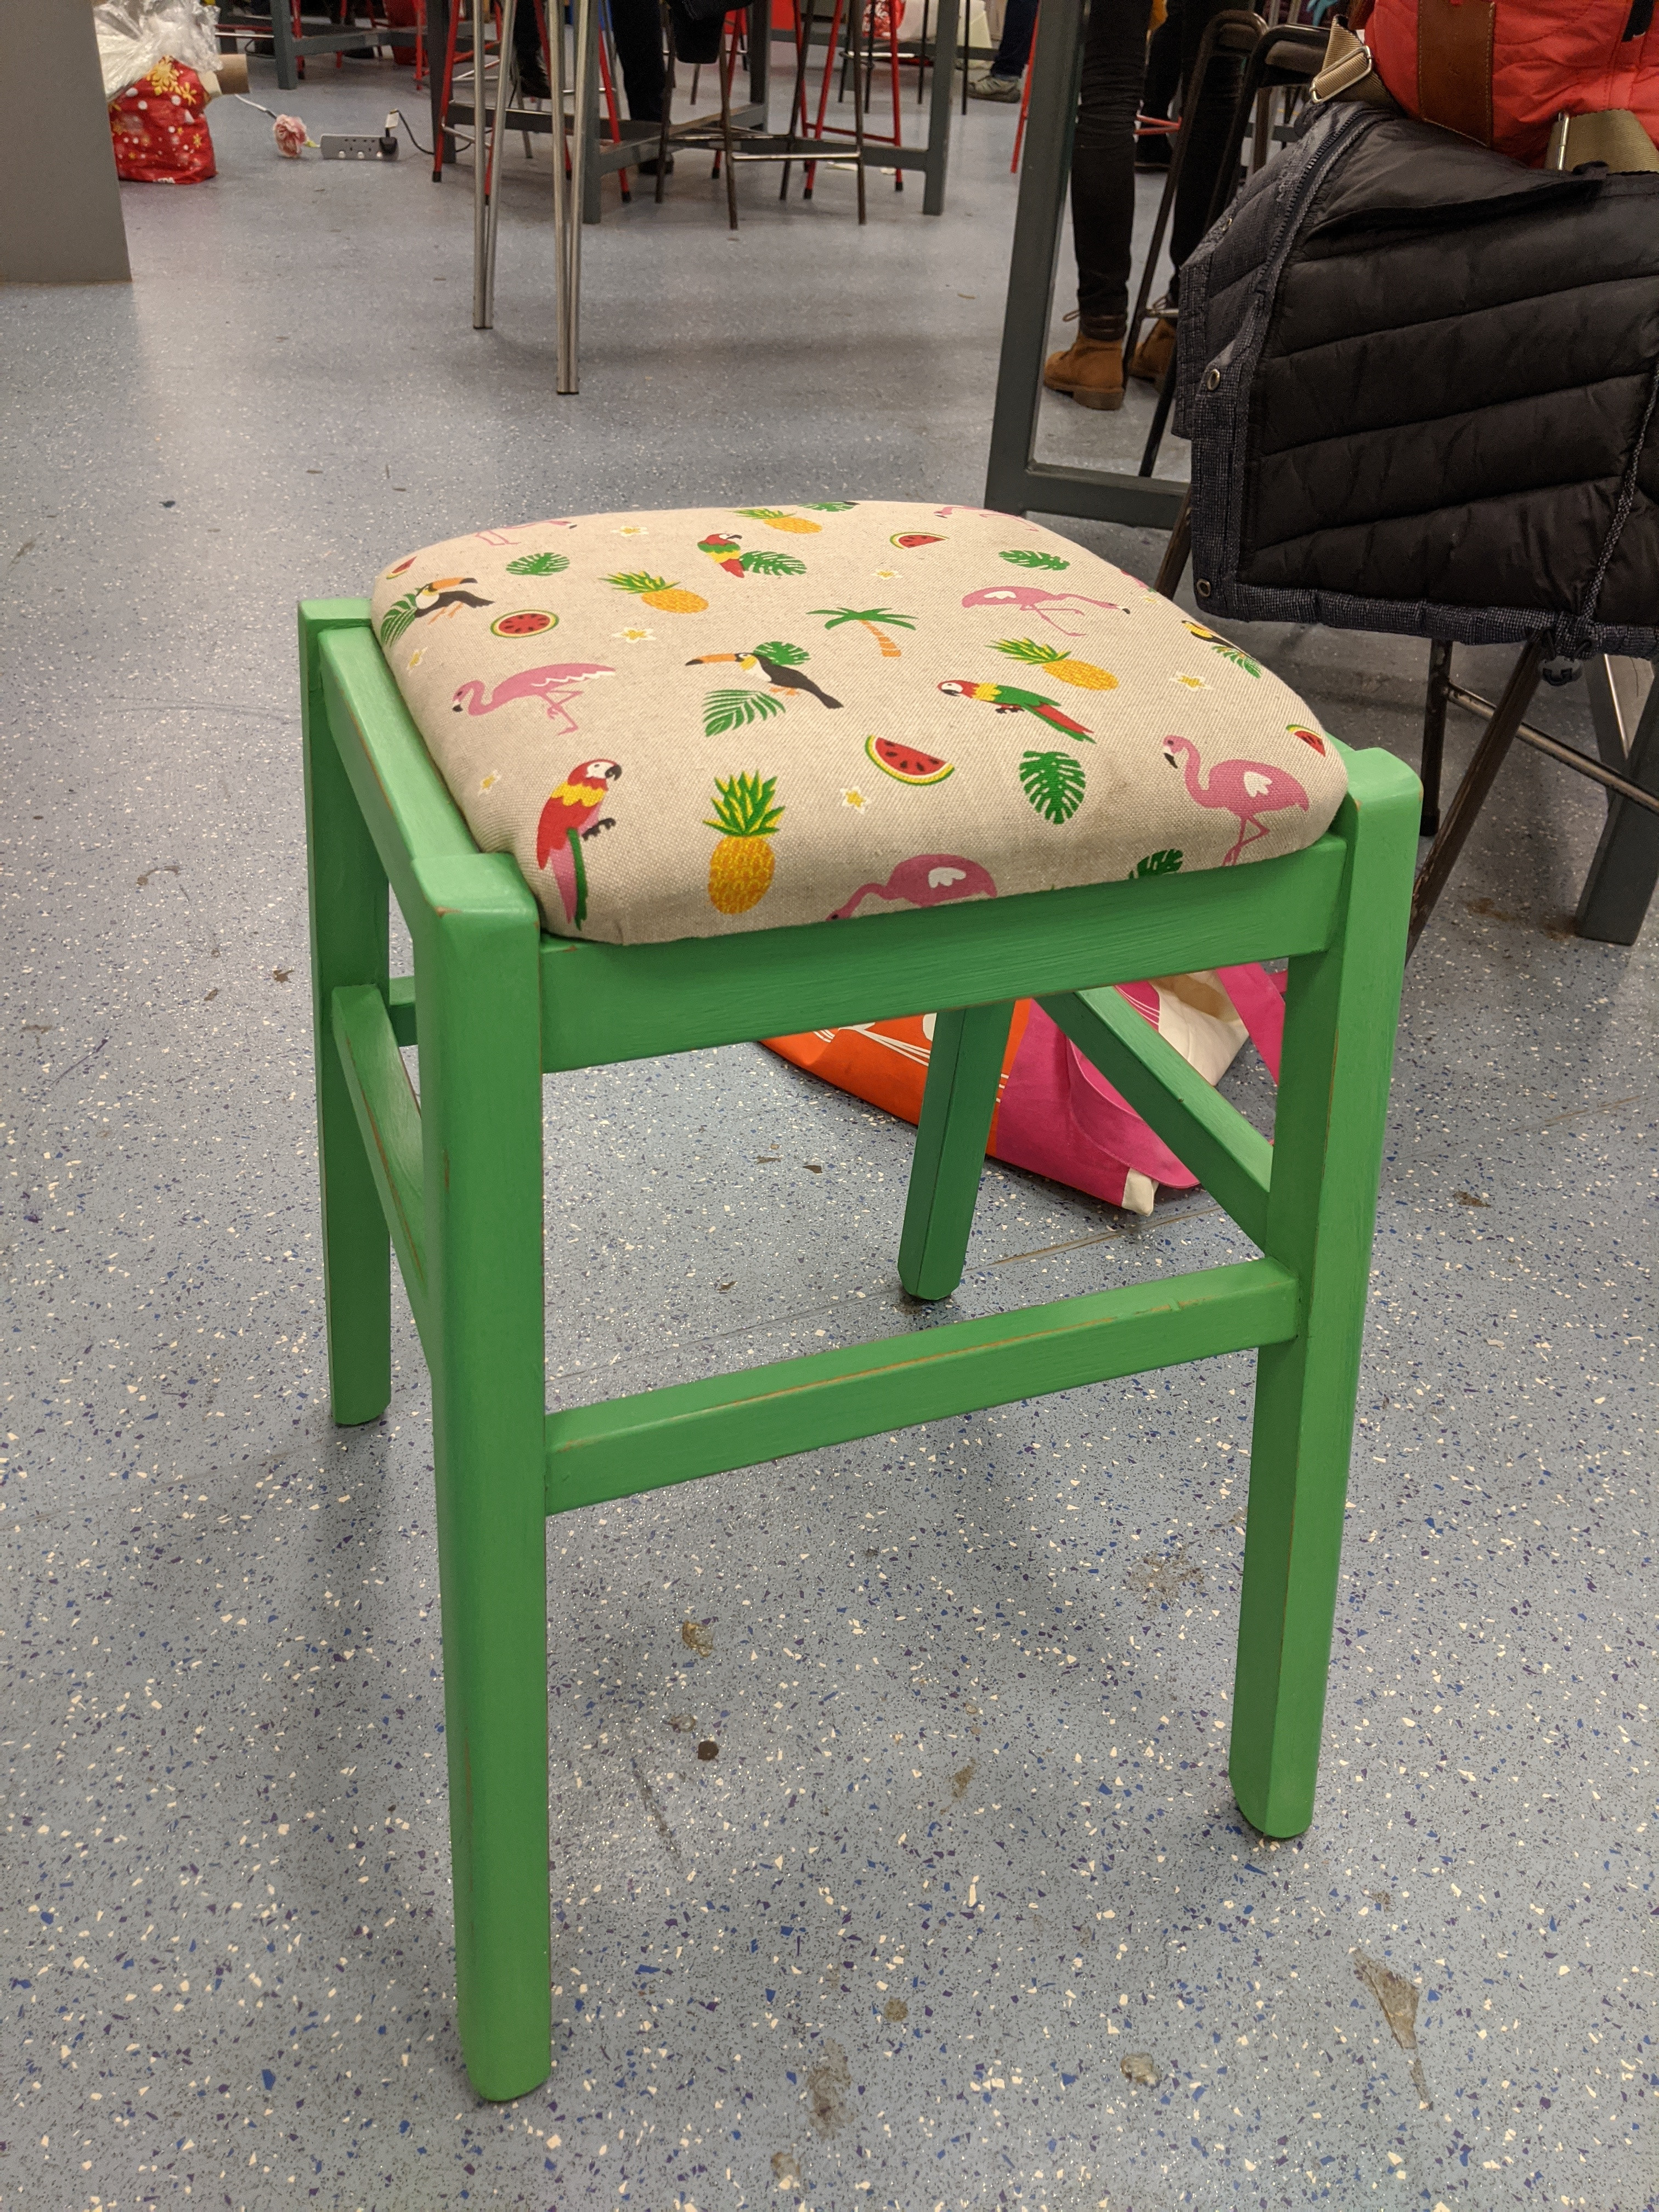 Upholstery - Sept  - Tuesday evening